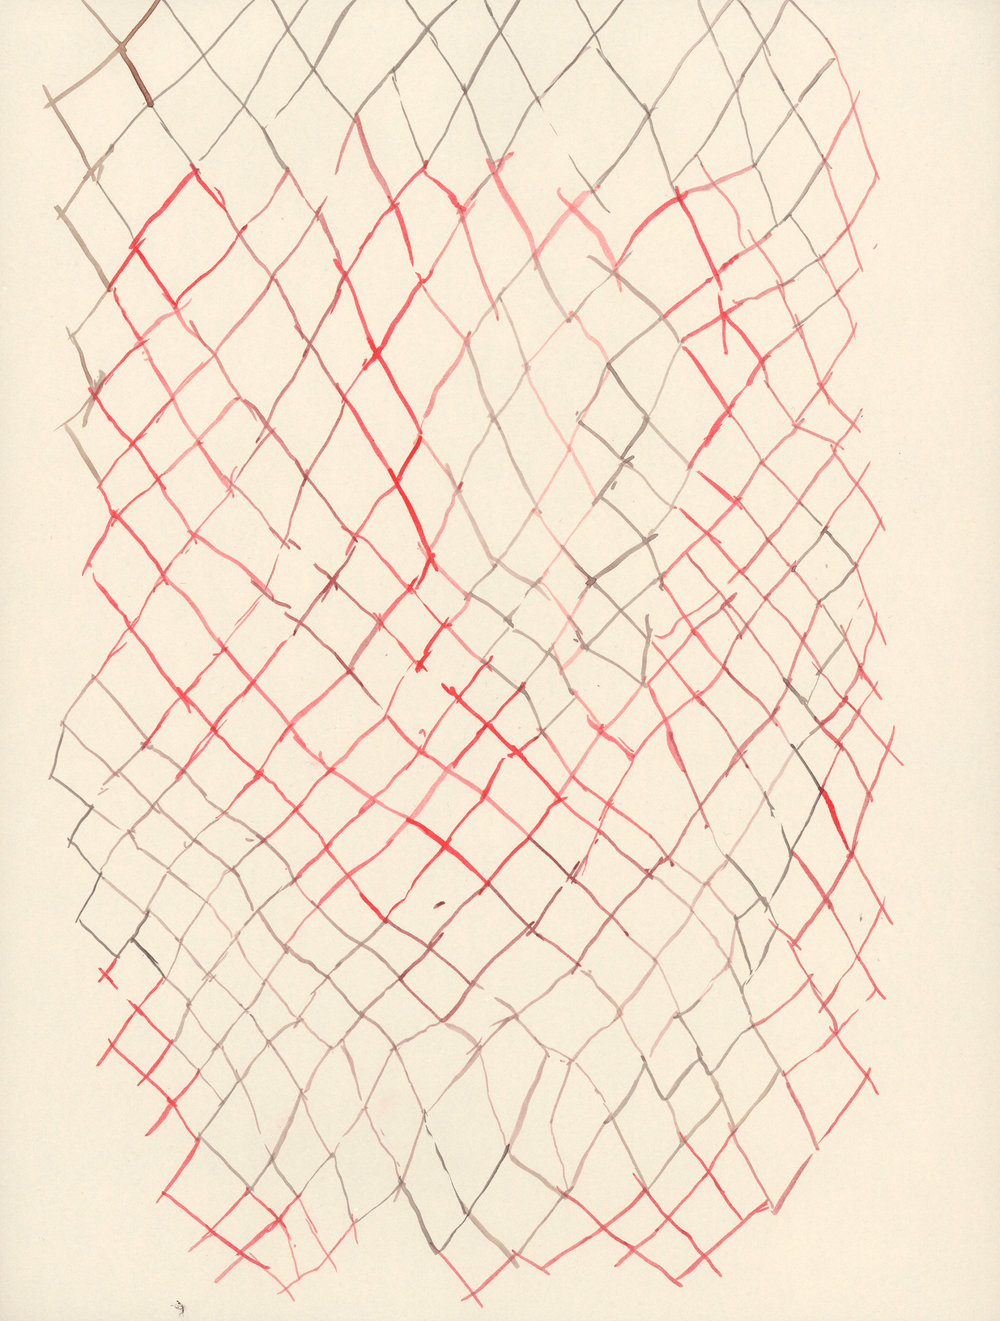 Untitled / 2010 ink on paper 30 x 40cm